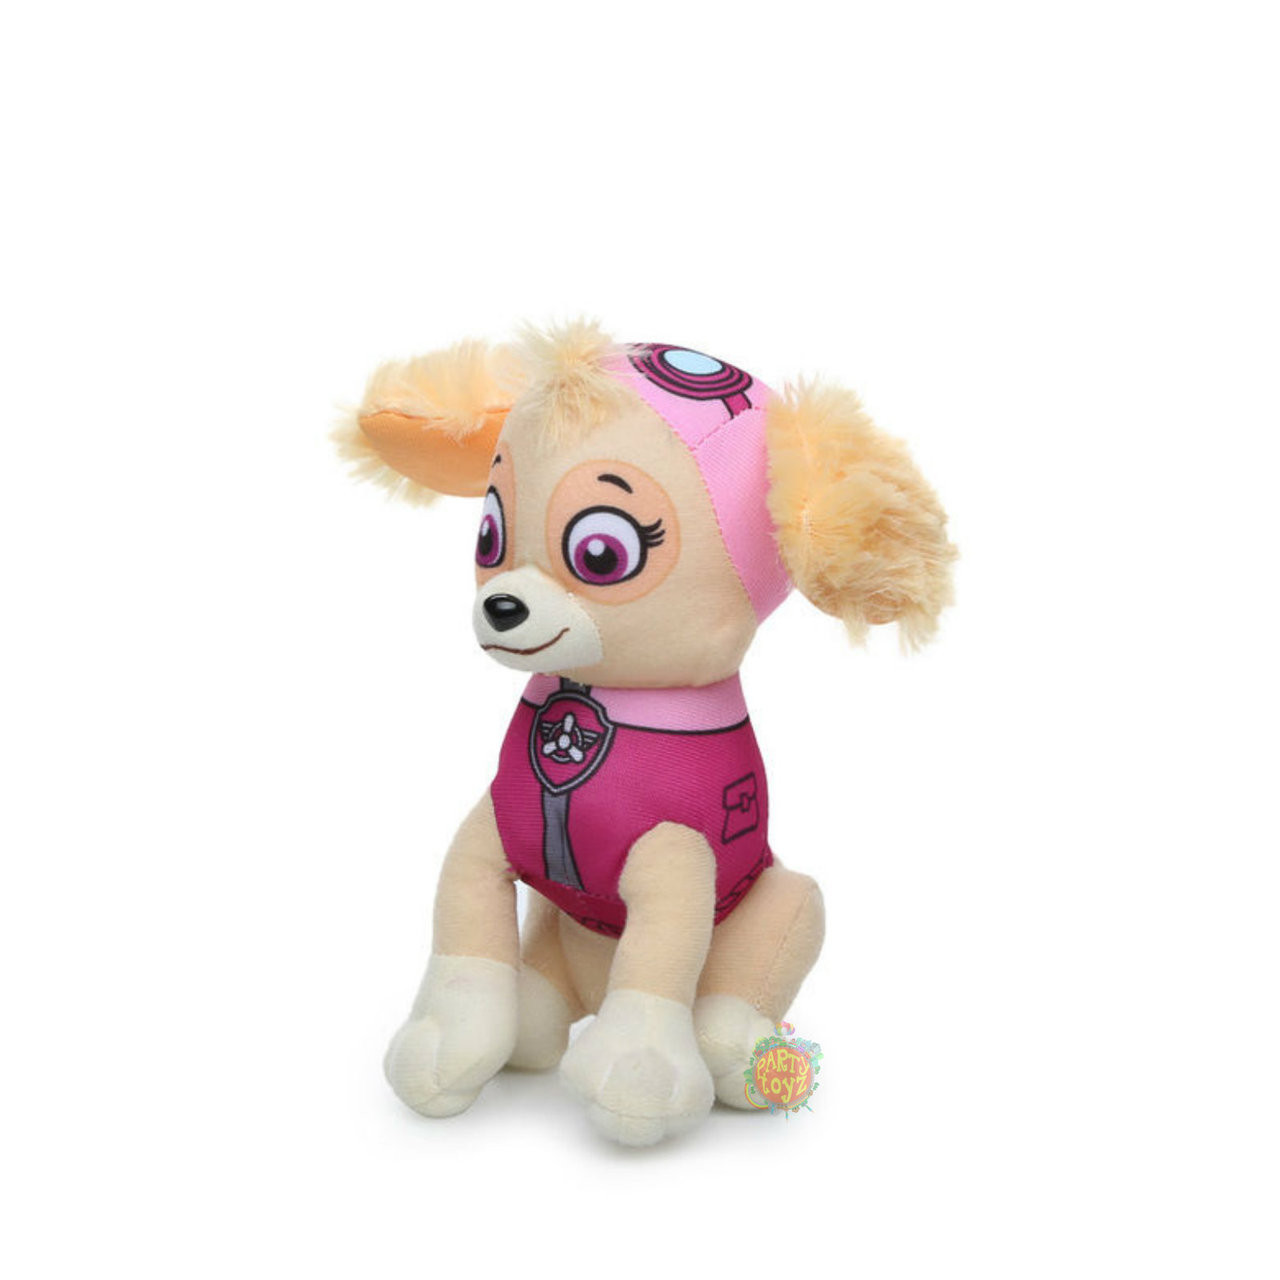 Paw Patrol Character 7 Inch Small Plush Toy  -  Skye